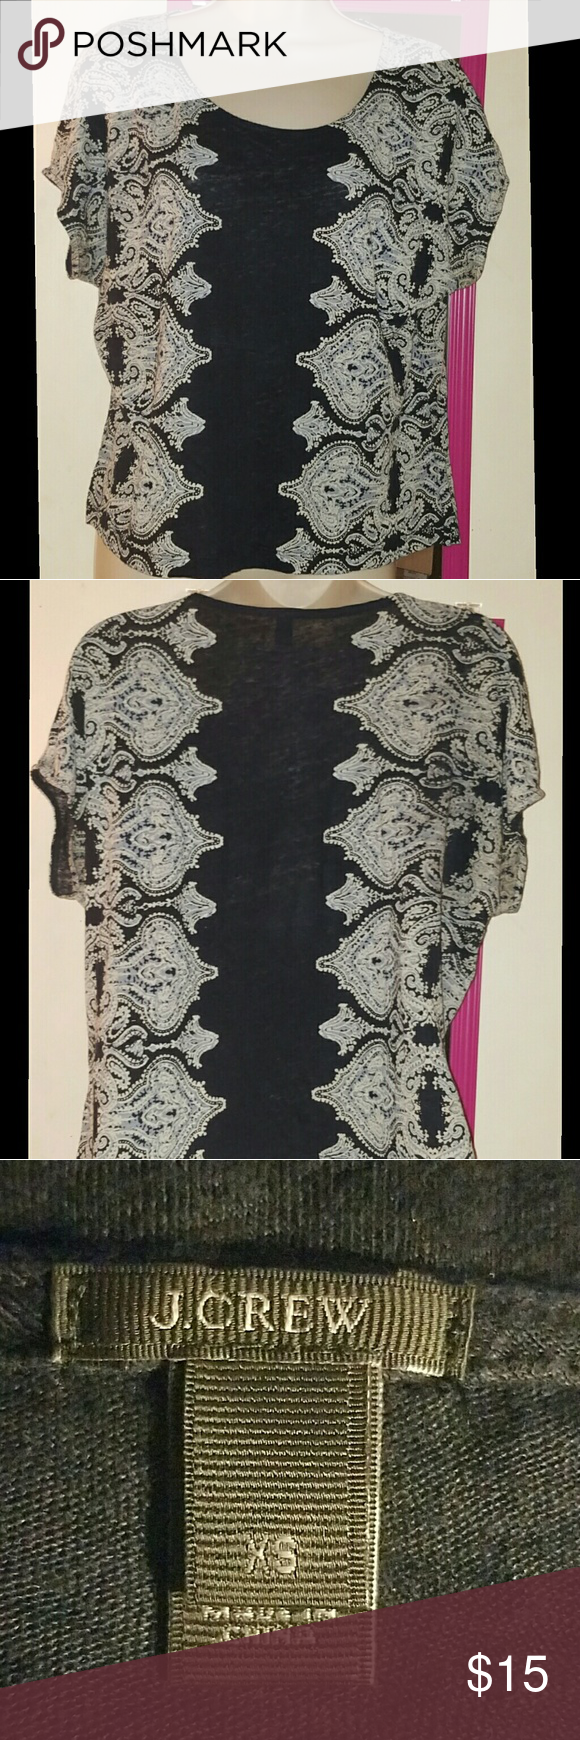 J. Crew Navy Paisley Top Navy paisley blouse from J. Crew. Stretchy tee like. Light blue and gray paisley designs on the side. Middle is navy. Size extra small. Oversized--could probably fit a small or medium as well. Bust 24 inches flat. Length 23 inches. J. Crew Tops Blouses